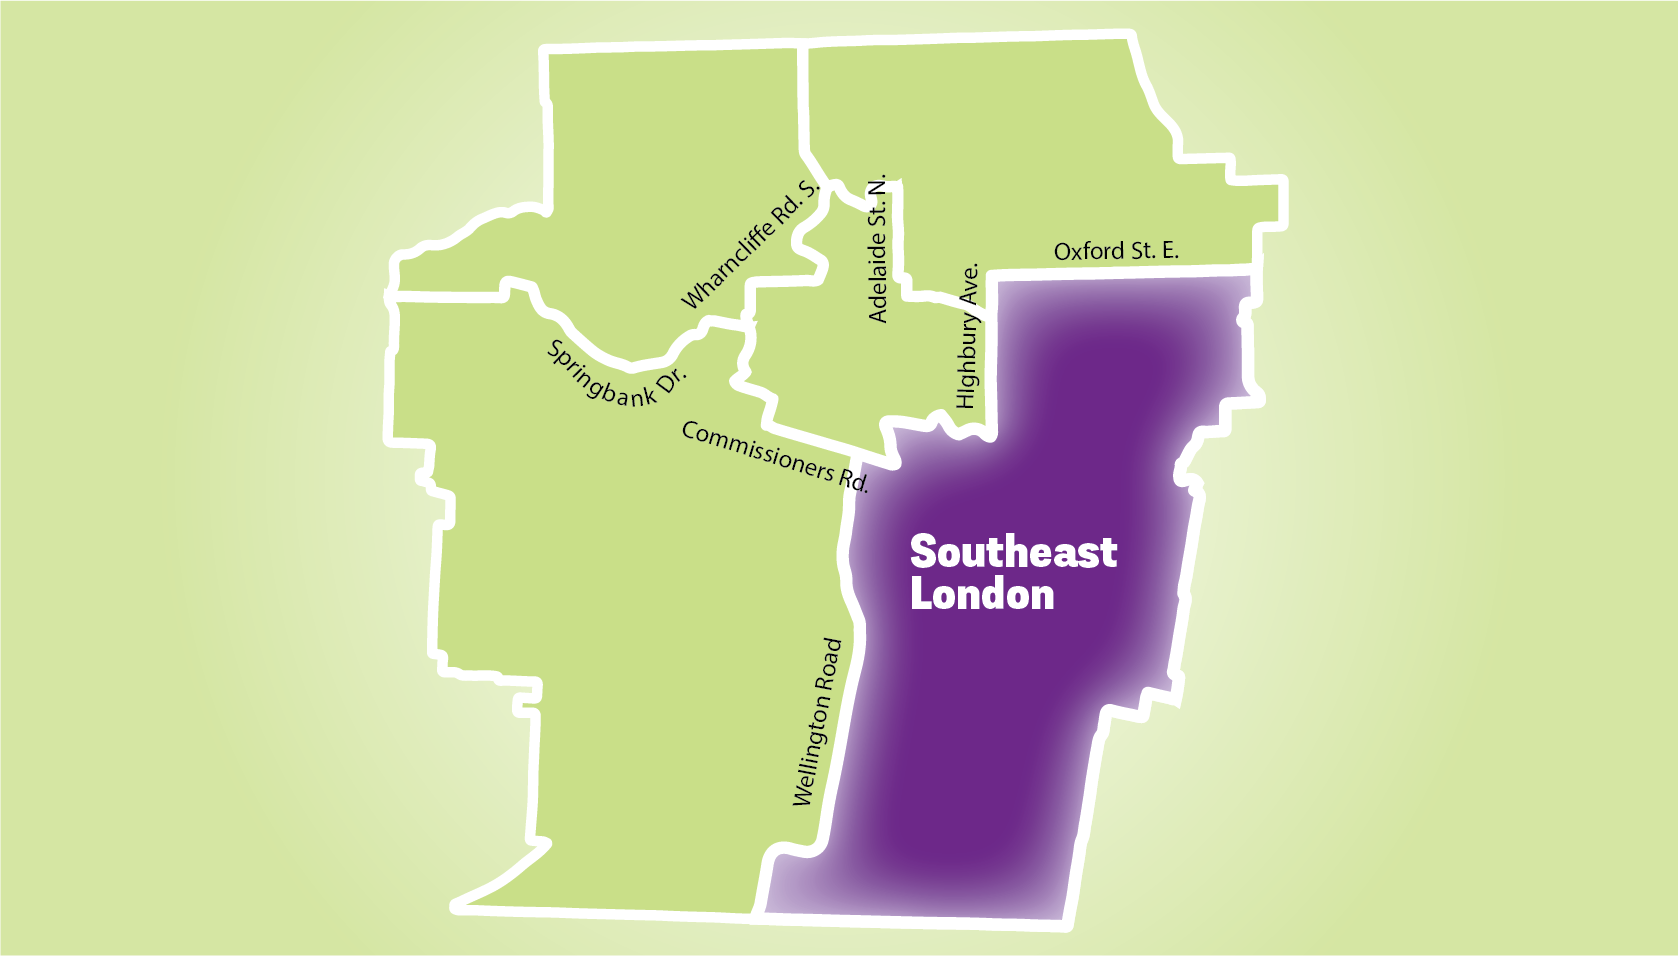 Map of London featuring Southeast.